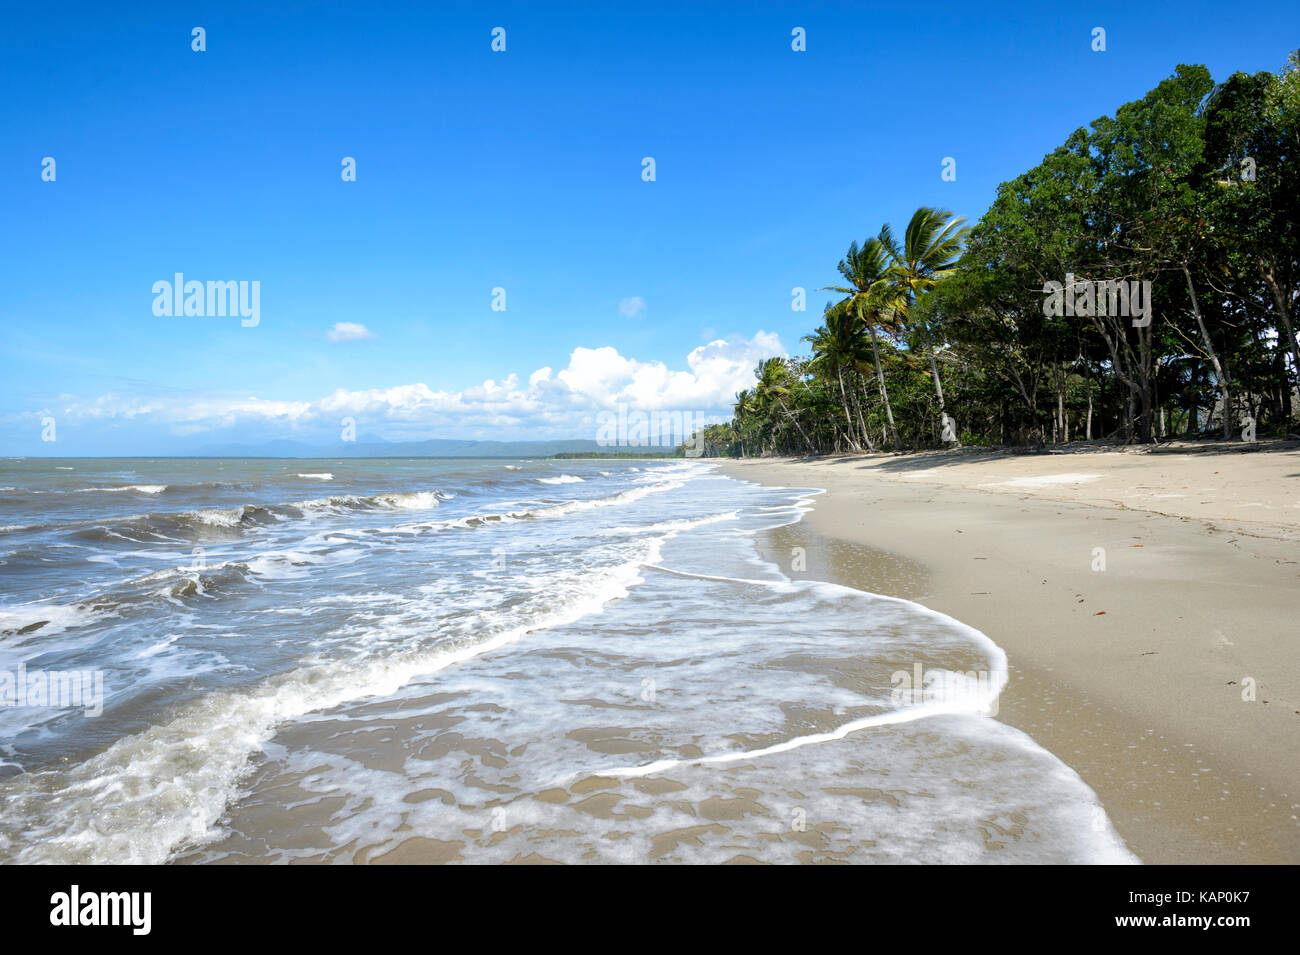 Exotic deserted sandy beach, Newell Beach, Far North Queensland, FNQ, QLD, Australia - Stock Image